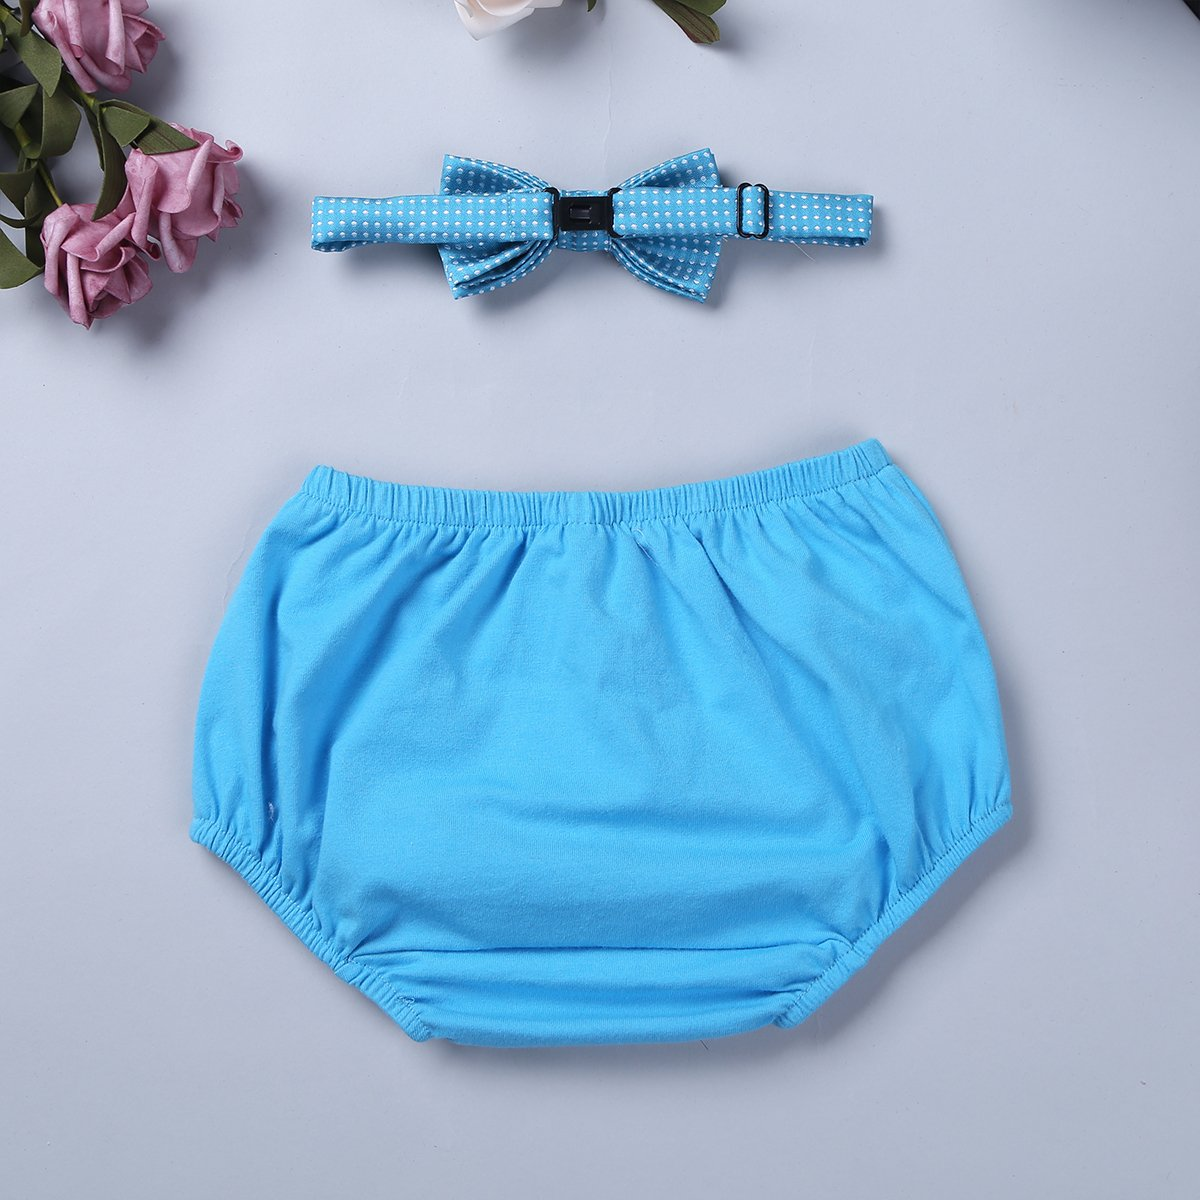 Agoky Baby Boys Cake Smash Outfit First 1st Birthday Party Bloomers Bow Tie FXD10046902-10046901-US